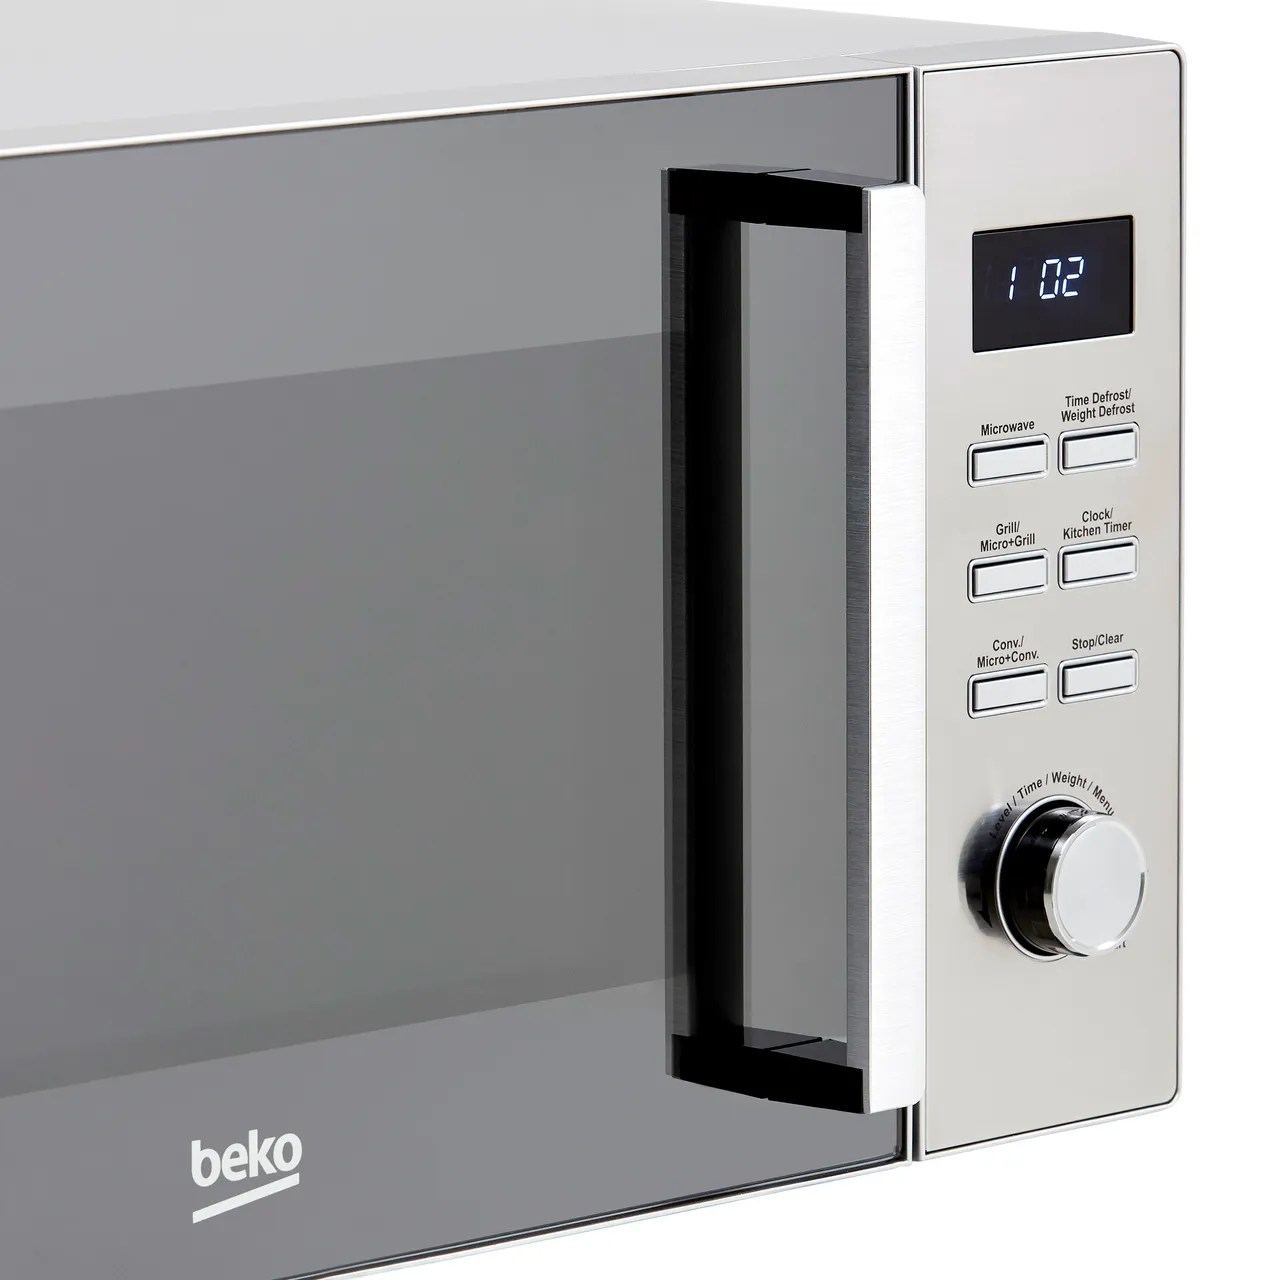 beko mcf32410x 32 litre combination microwave oven stainless steel